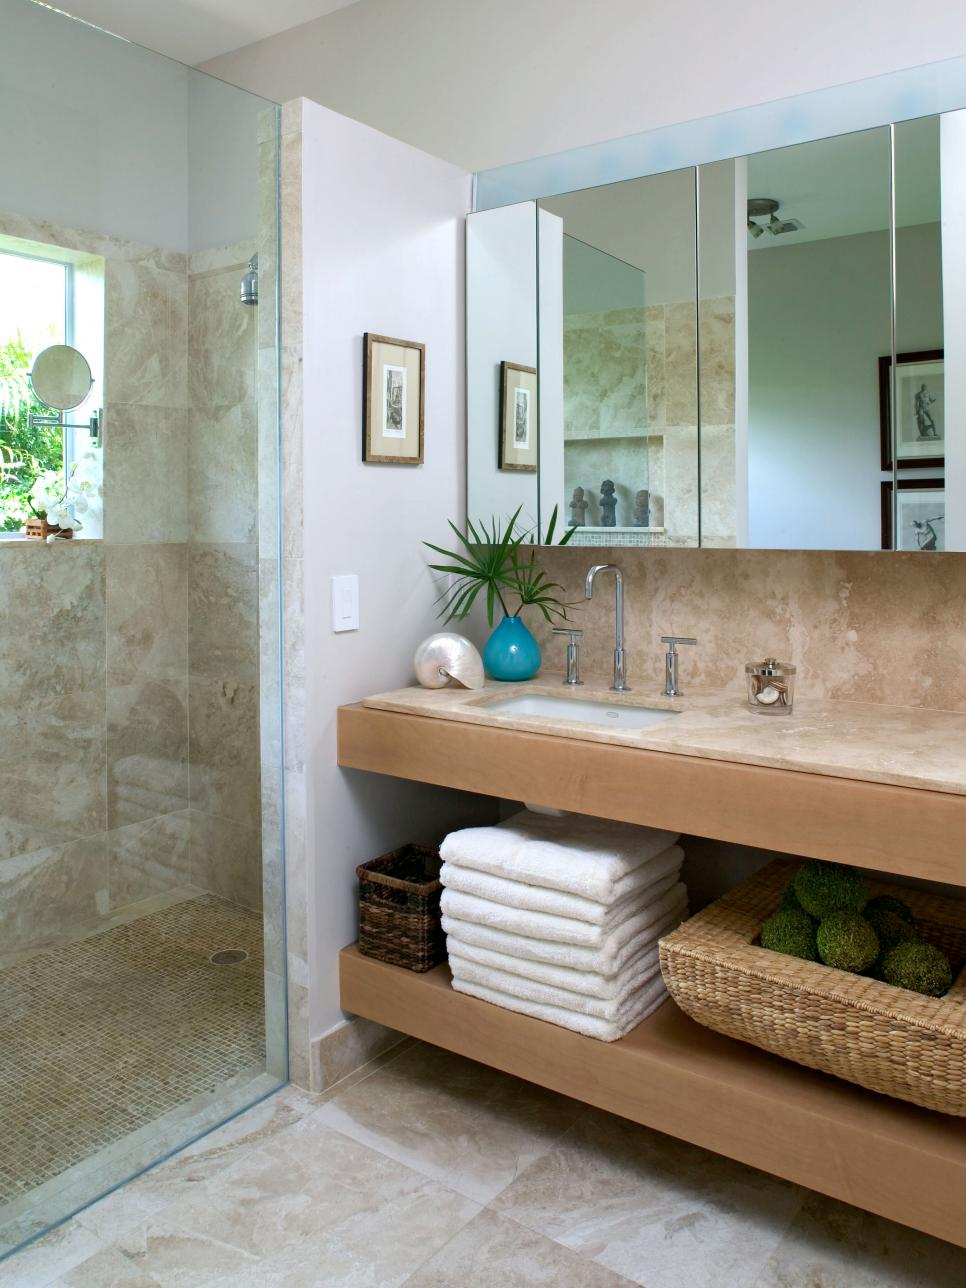 Coastal bathroom ideas hgtv for Bathroom designs hgtv